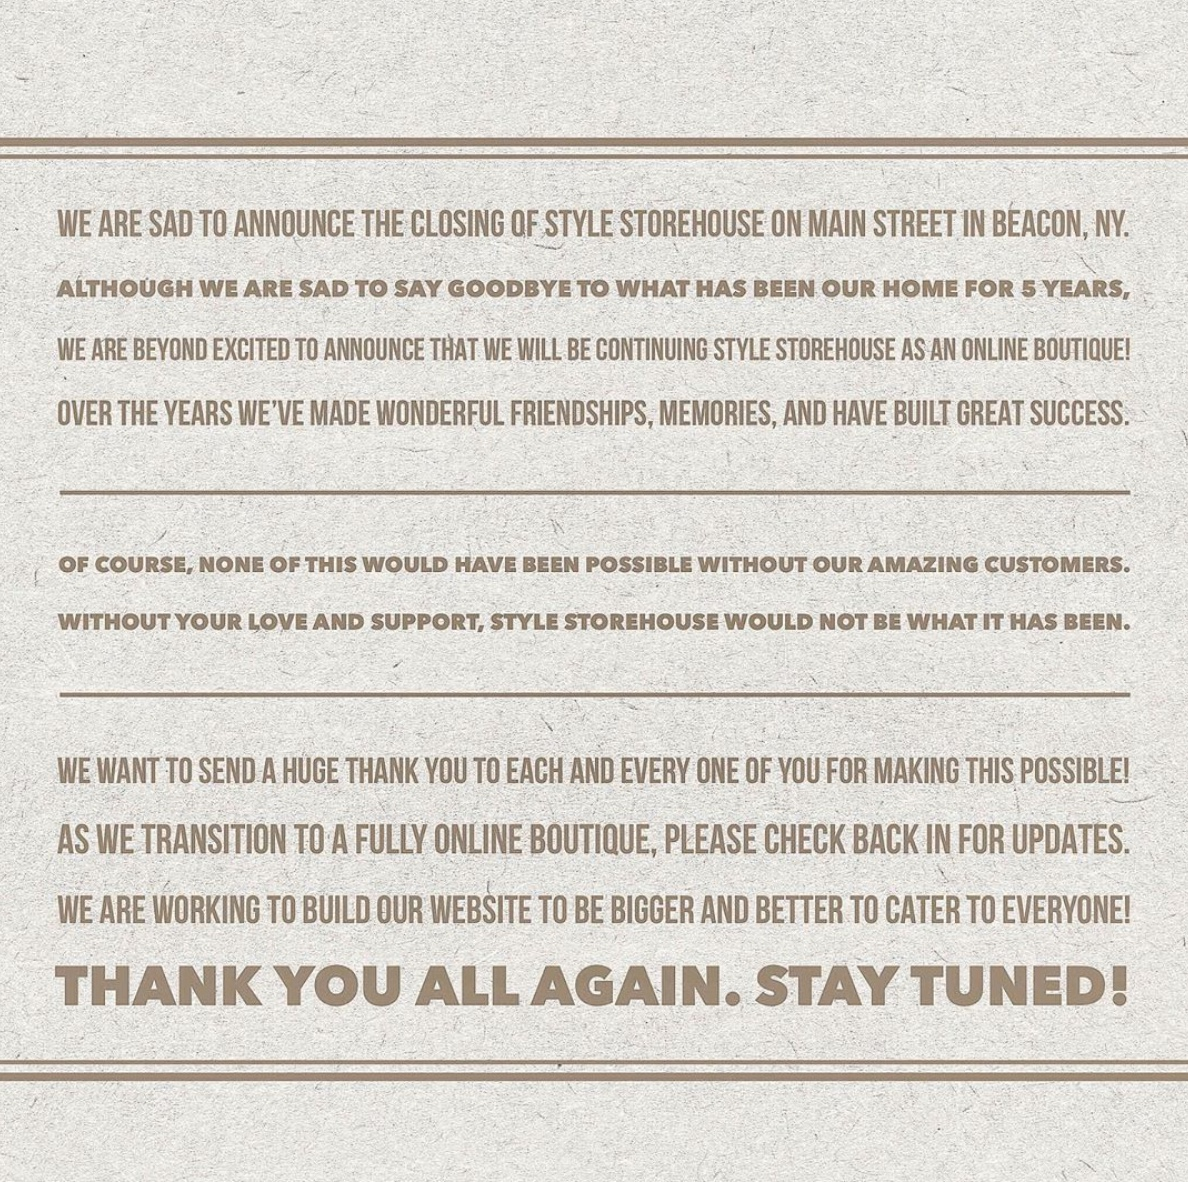 style storehouse closing announcement.jpeg